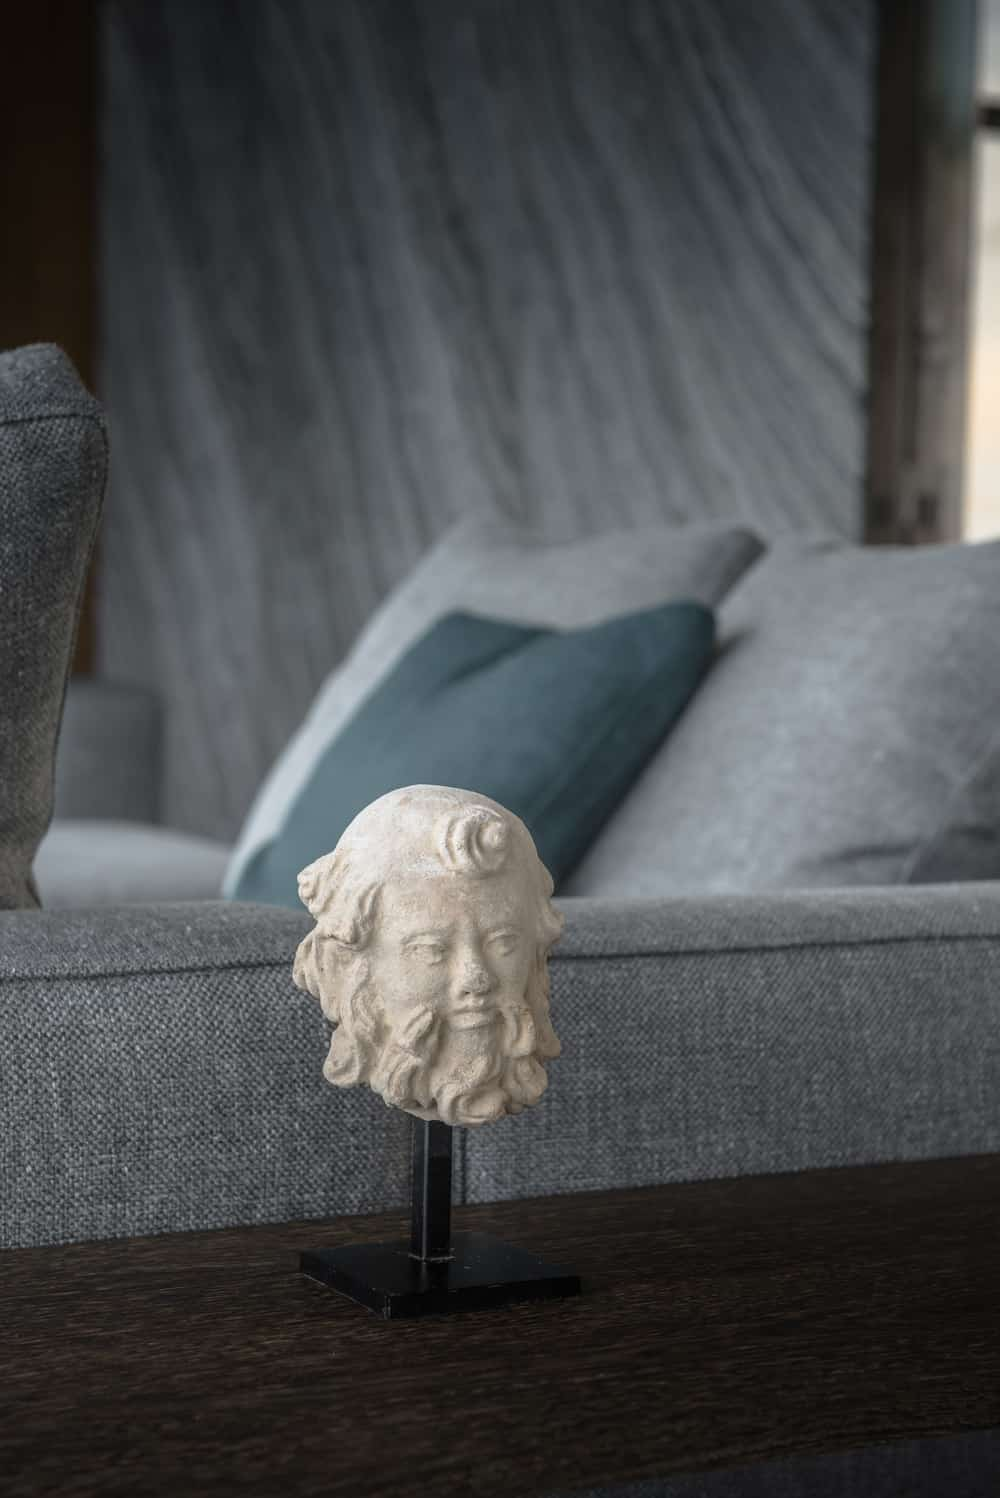 This is a close look at the white figurine on the console table behind the gray sectional sofa.